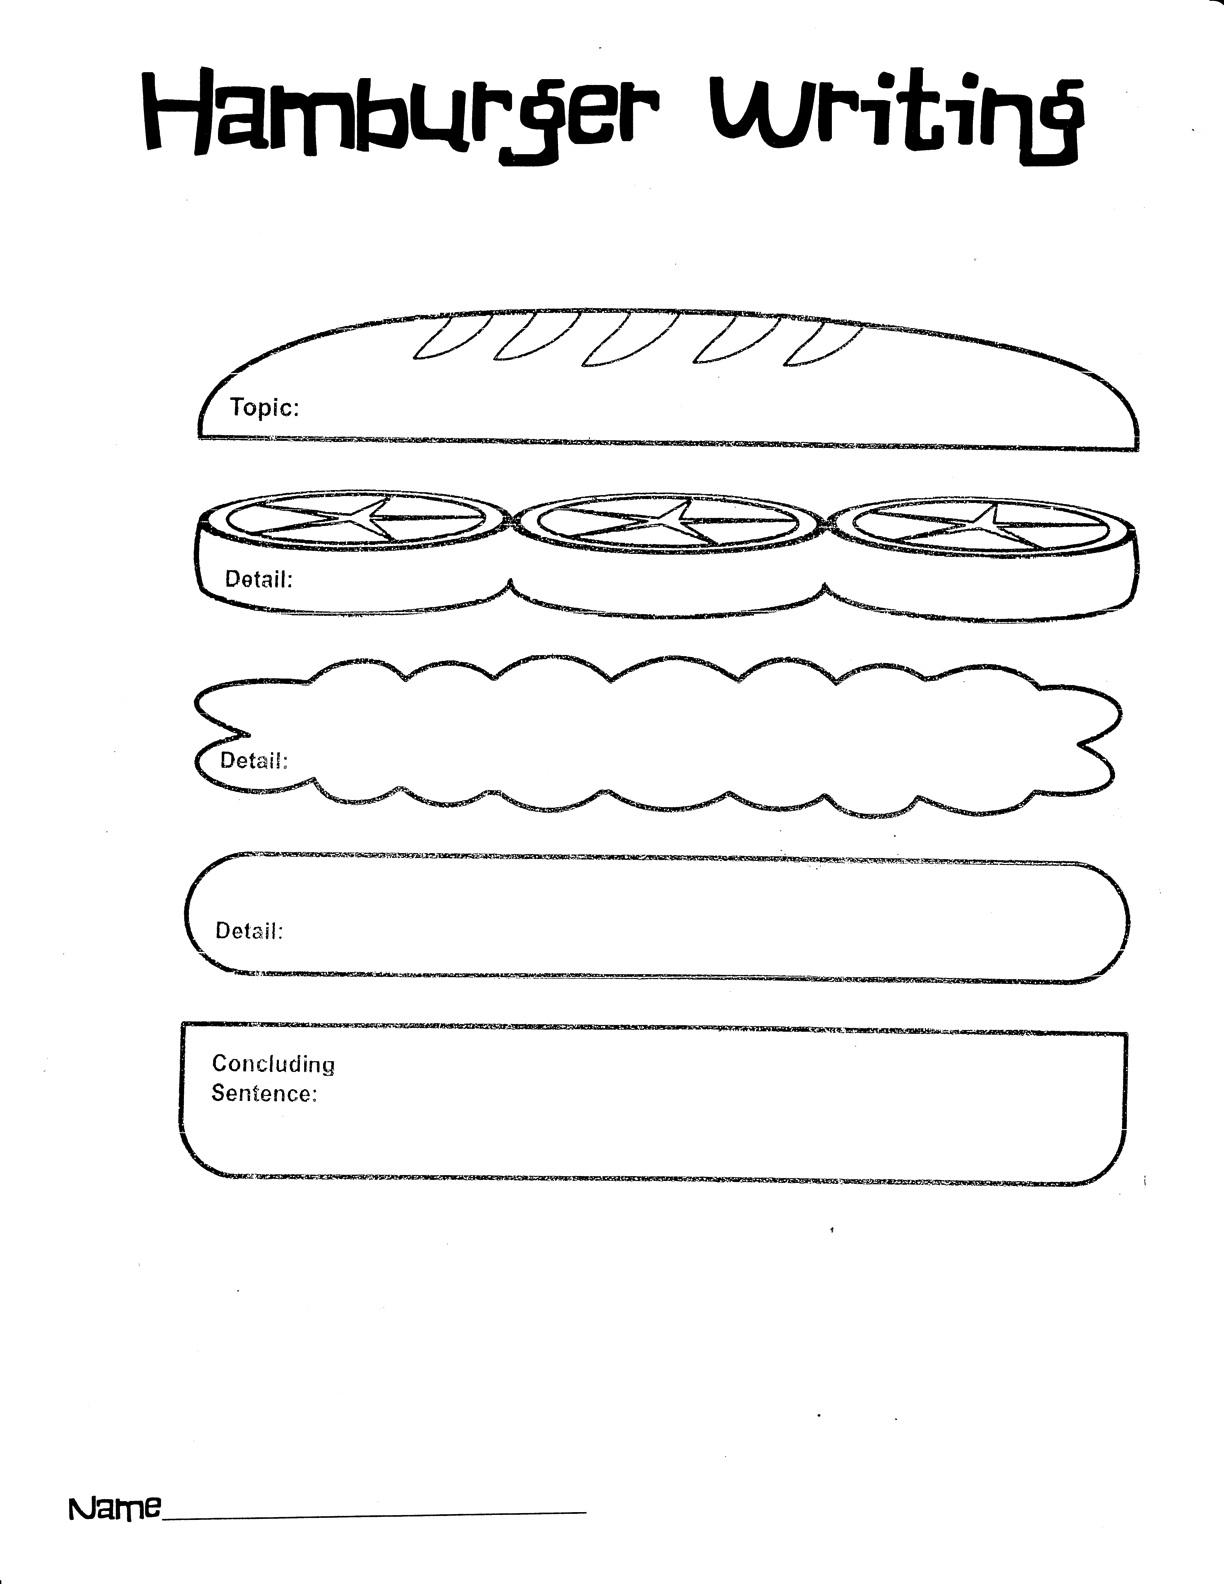 hamburger essay model ppt